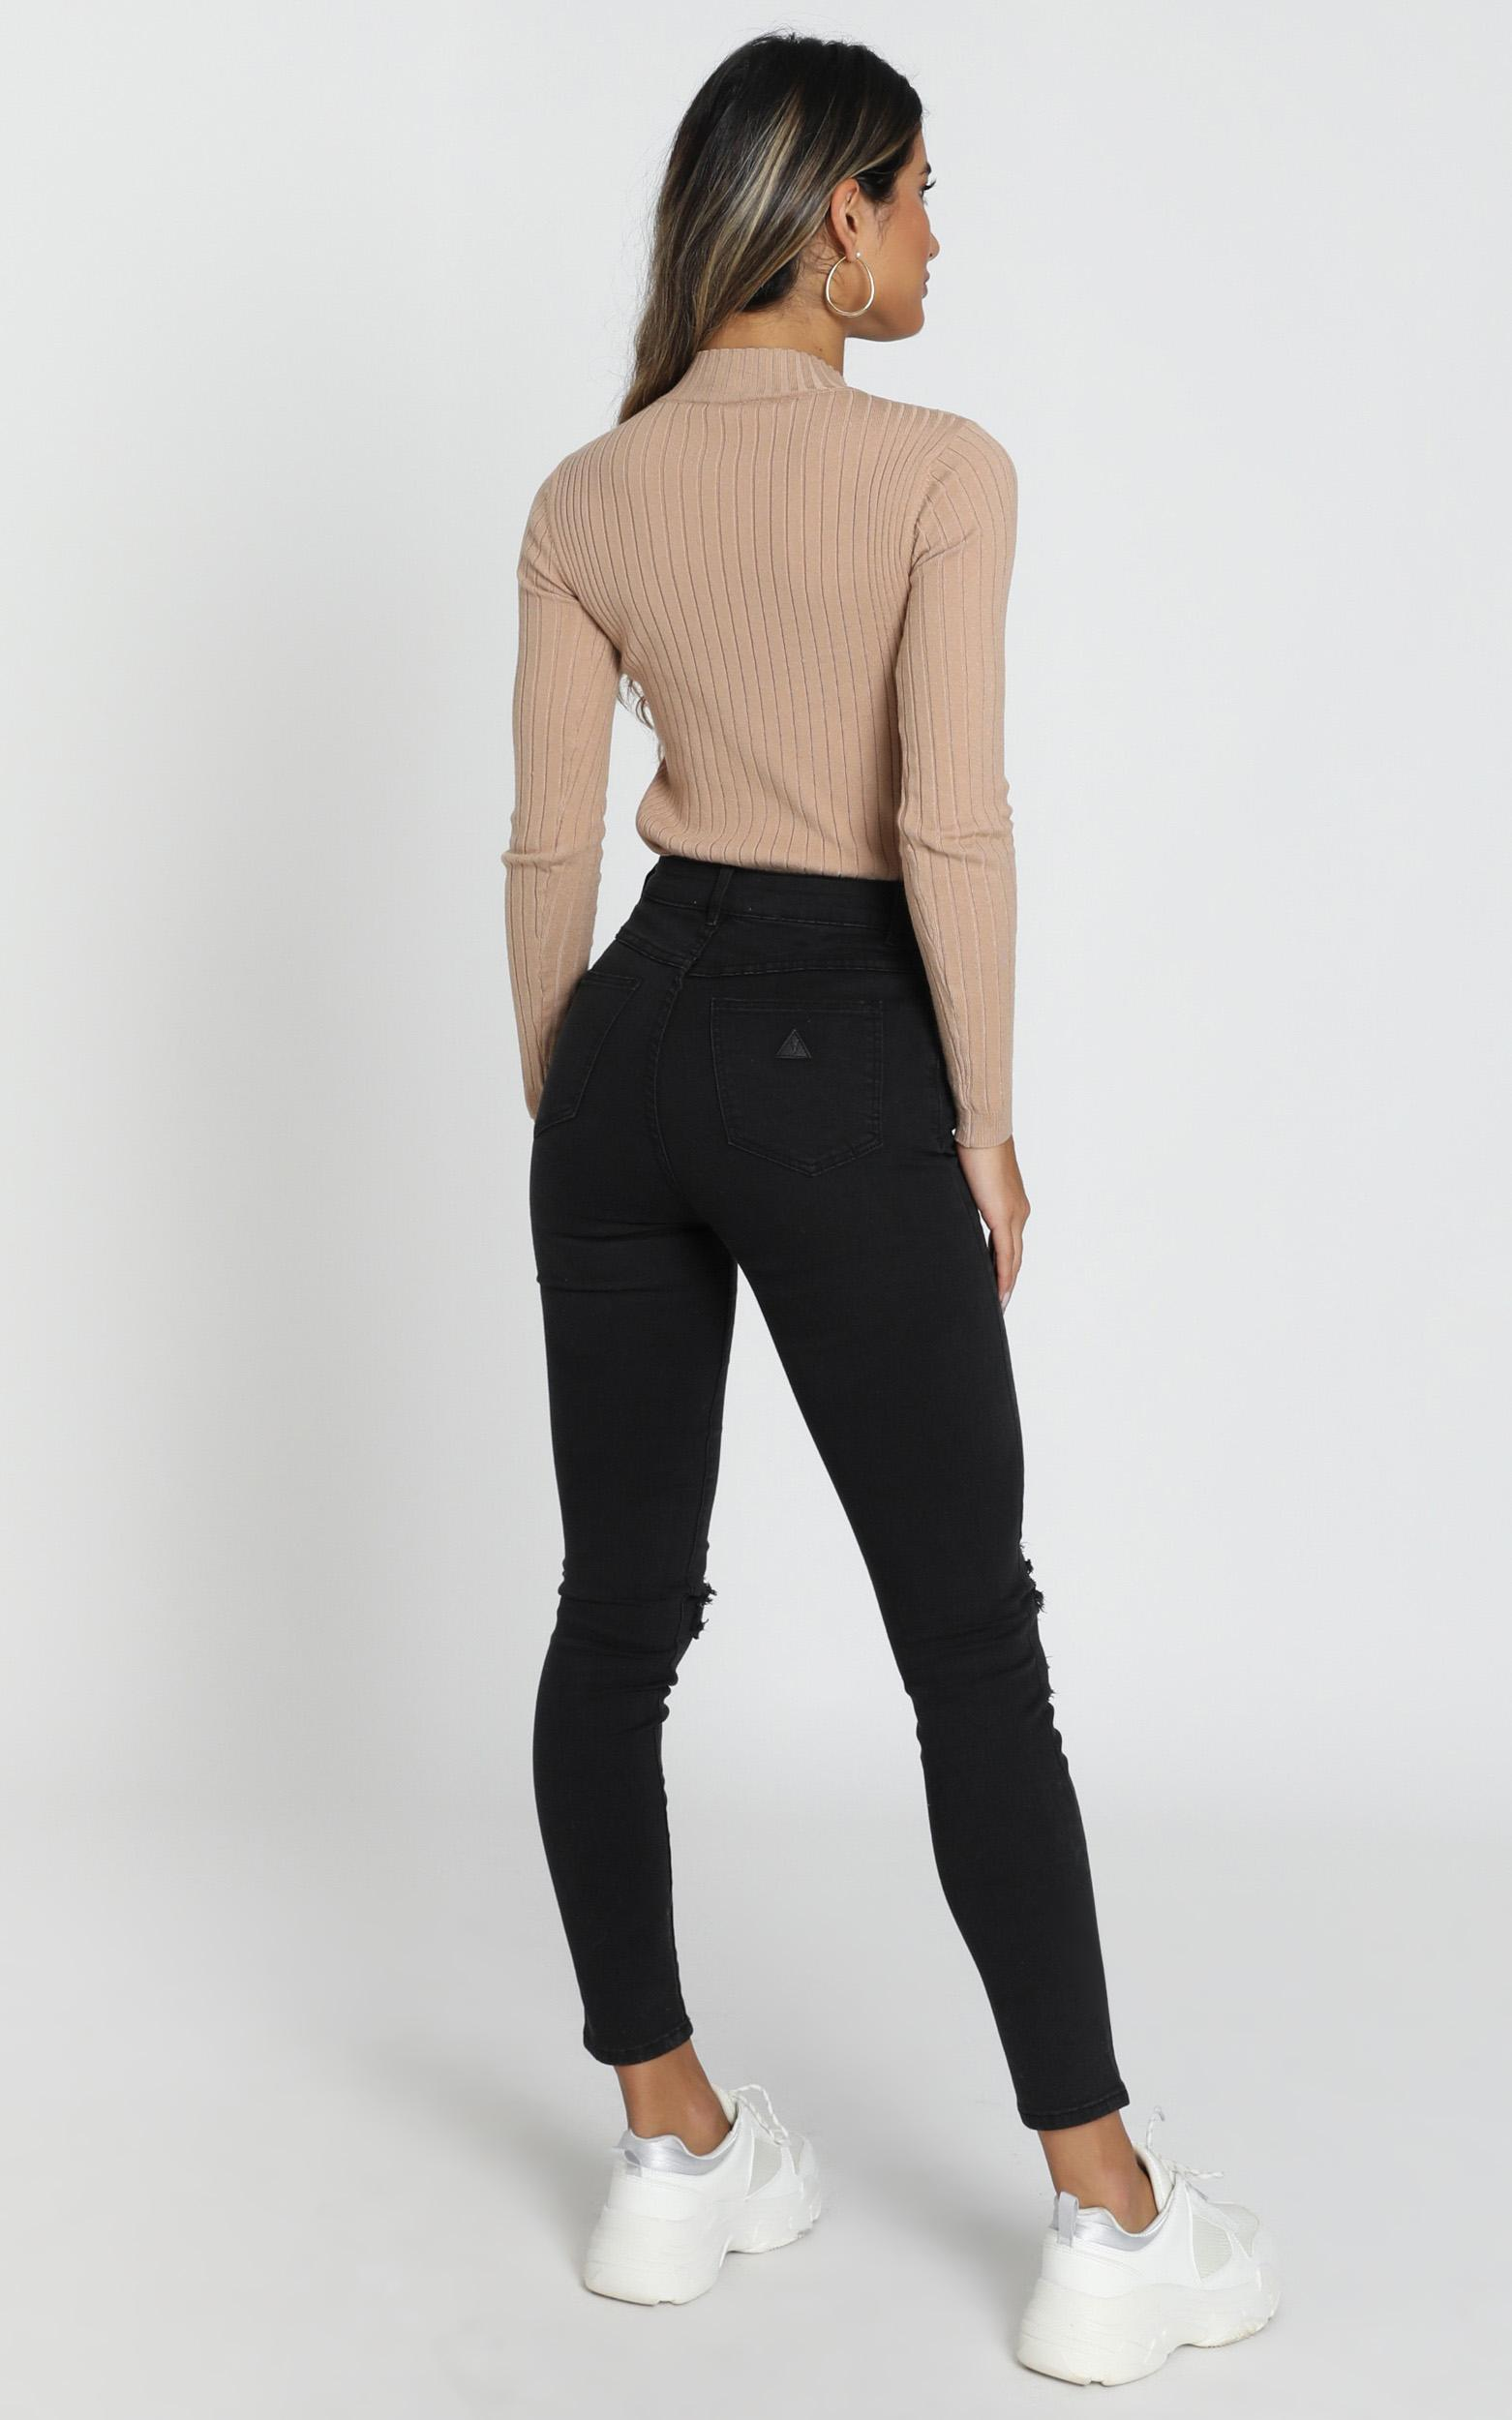 Abrand - A High Skinny Ankle Basher Jeans in buster black - 14 (XL), BLK1, hi-res image number null